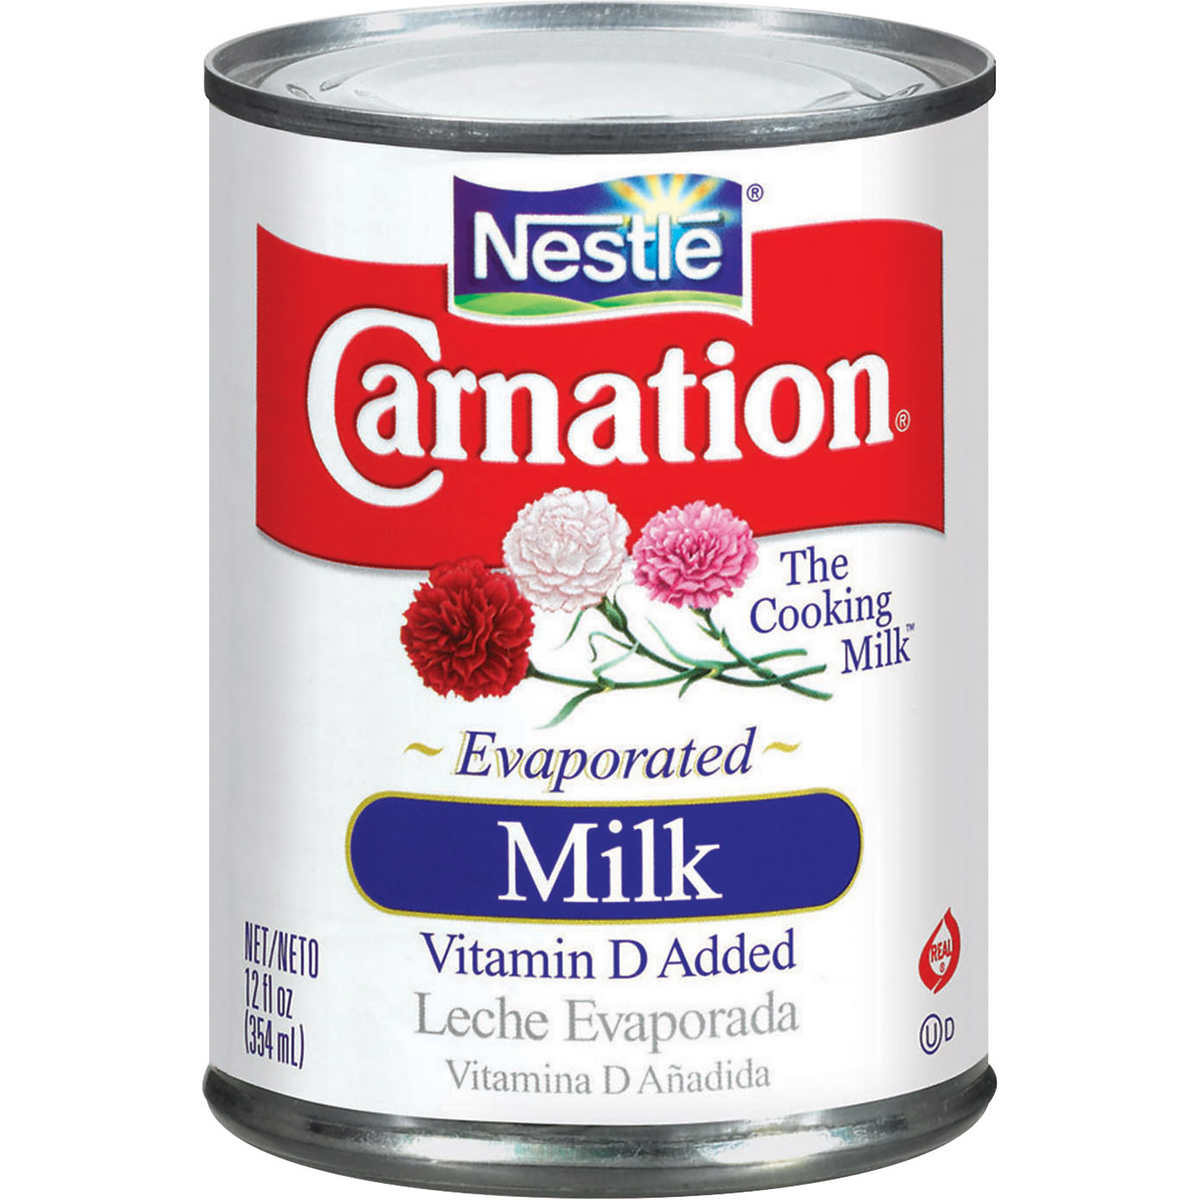 Carnation Evaporated Milk Cans 12 fl.oz, 12 Count